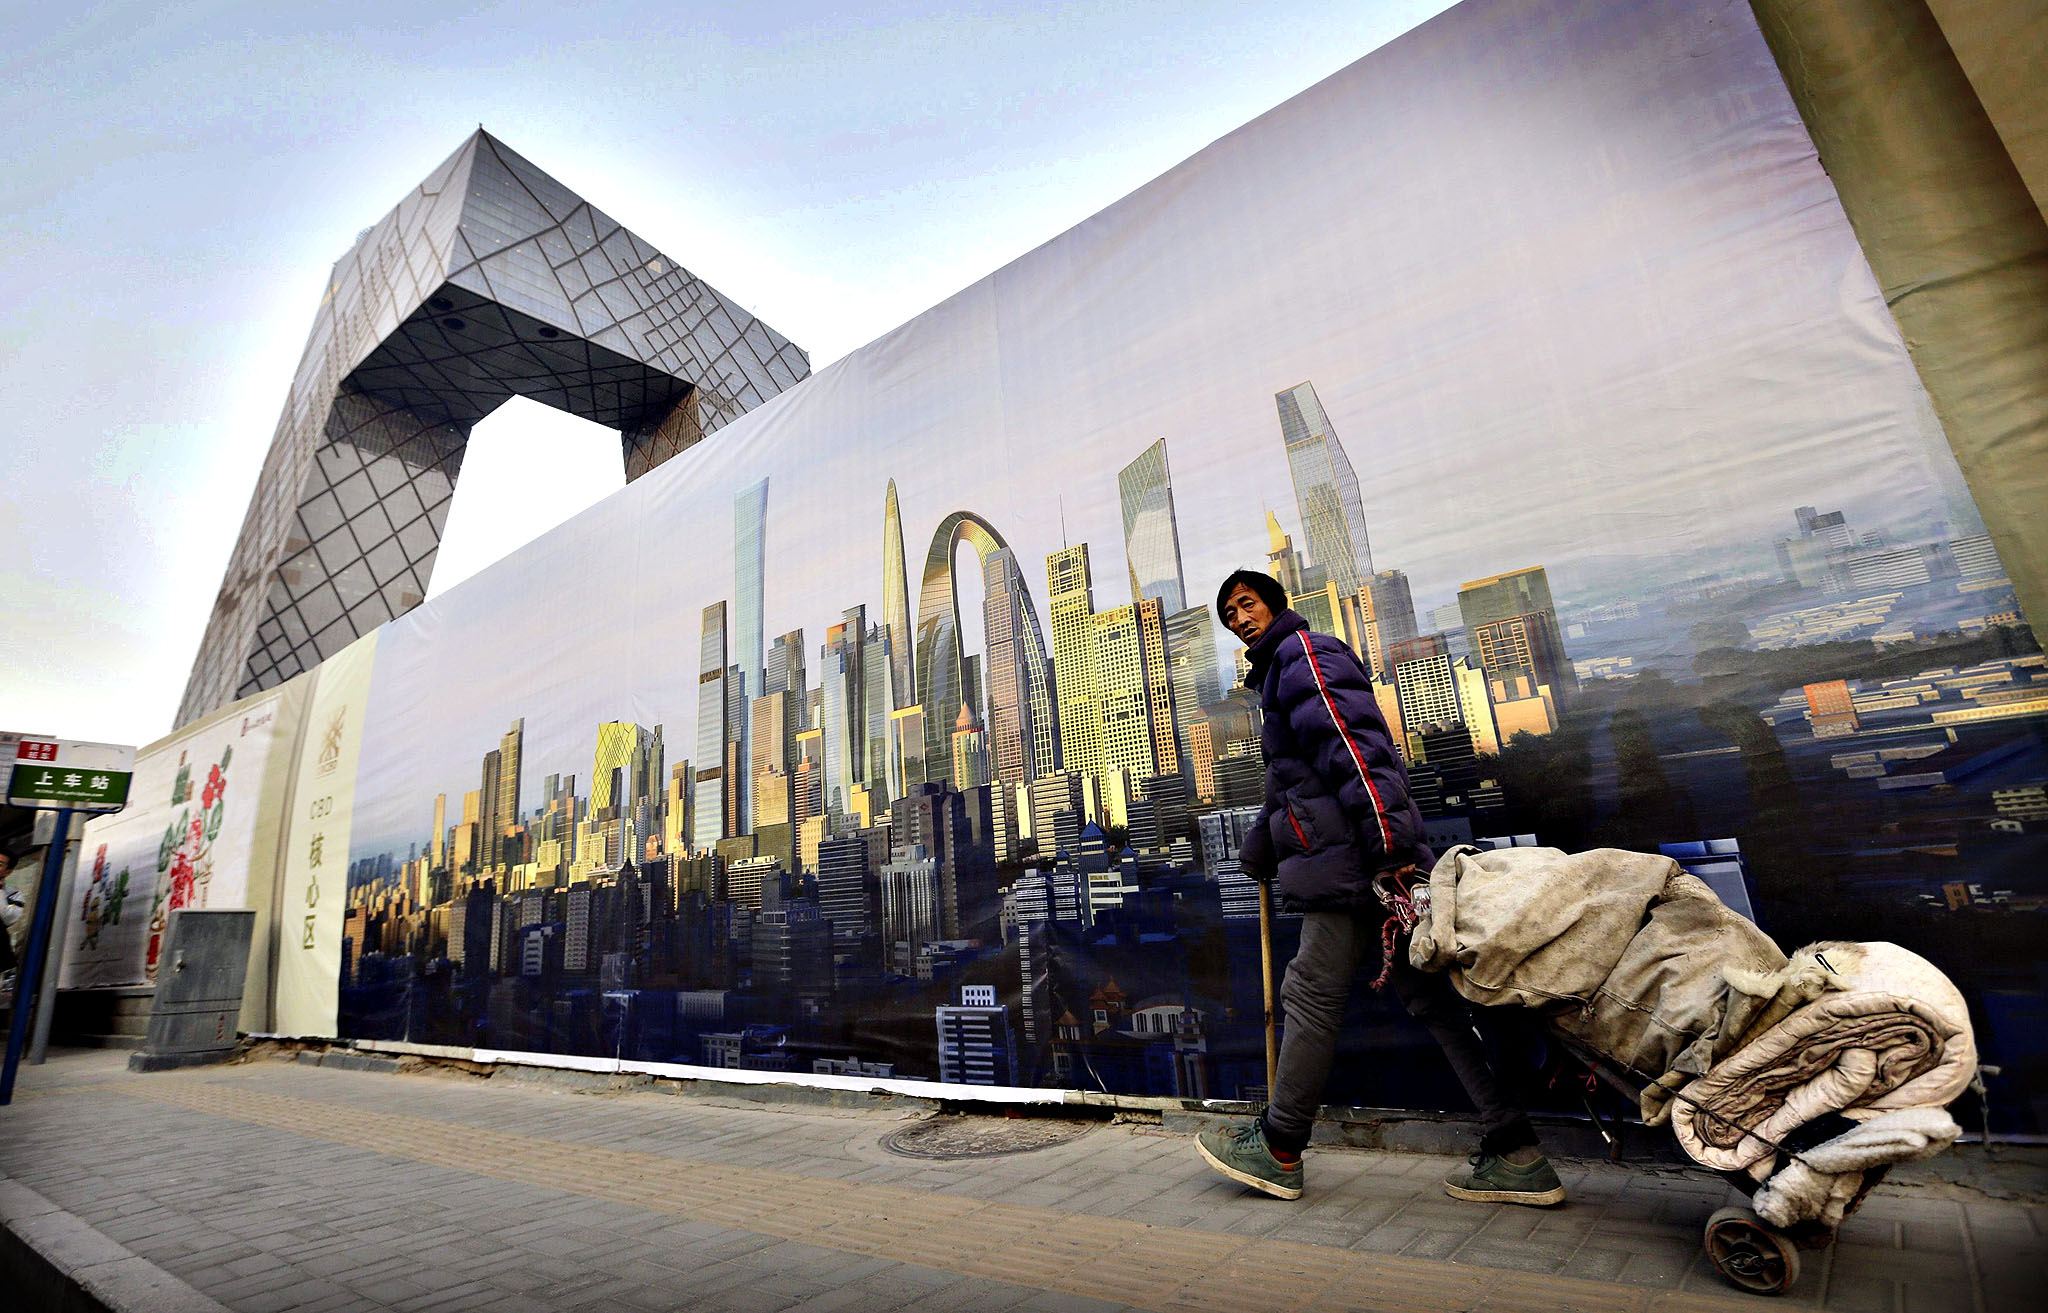 A ragpicker walks past a poster showing Beijing's central business district, next to the CCTV building in Beijing...A ragpicker walks past a poster showing Beijing's central business district next to the China Central Television (CCTV) building outside a construction site in Beijing, October 21, 2014. It is still taking time for reform measures to gain traction, Chinese Premier Li Keqiang was quoted as saying by the Foreign Ministry.